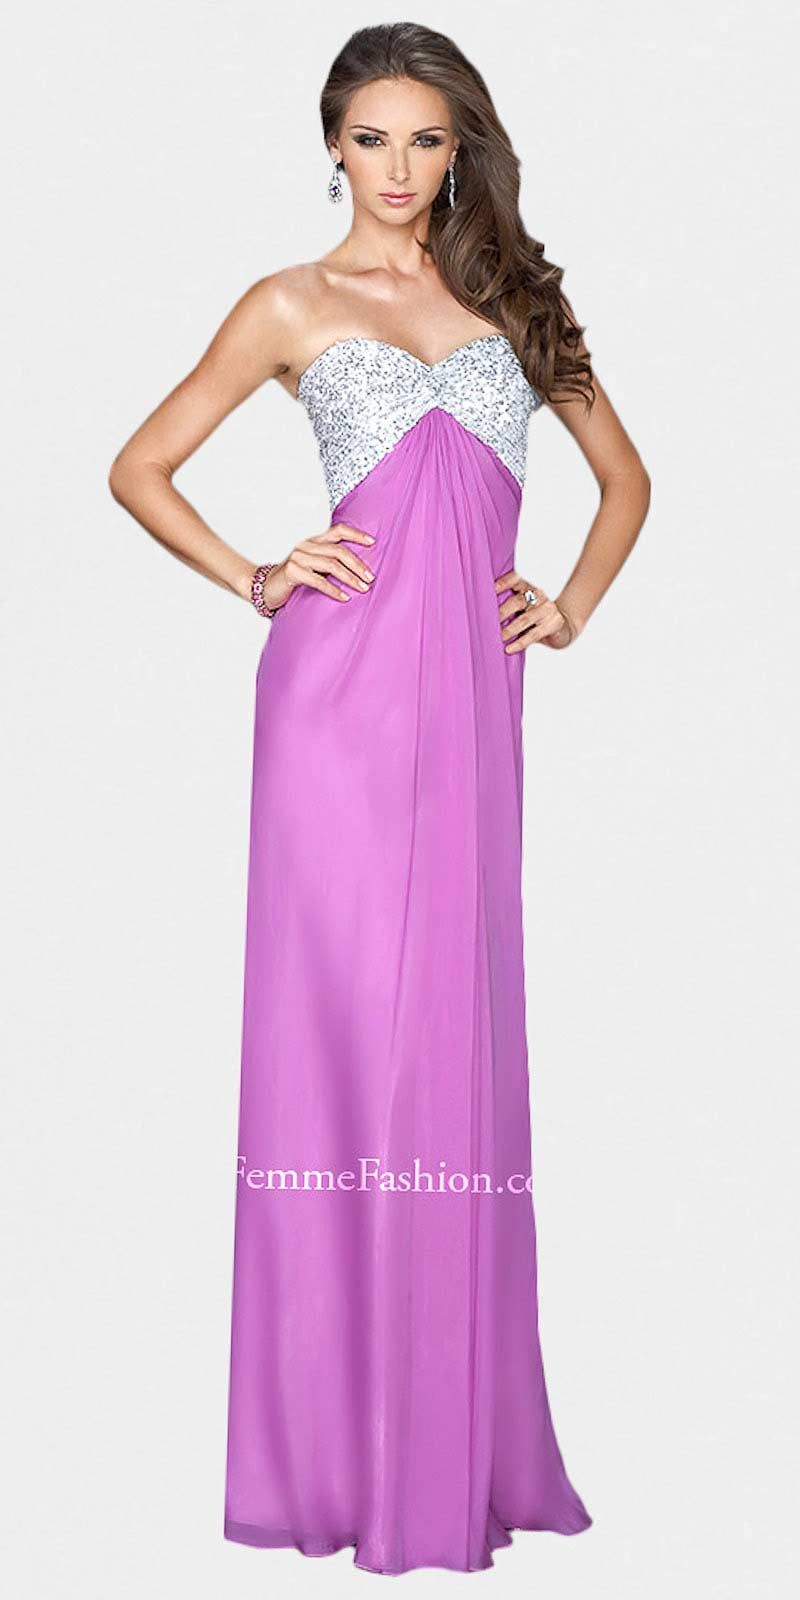 Silver Sequined Sweetheart Strapless Prom Dresses by La Femme